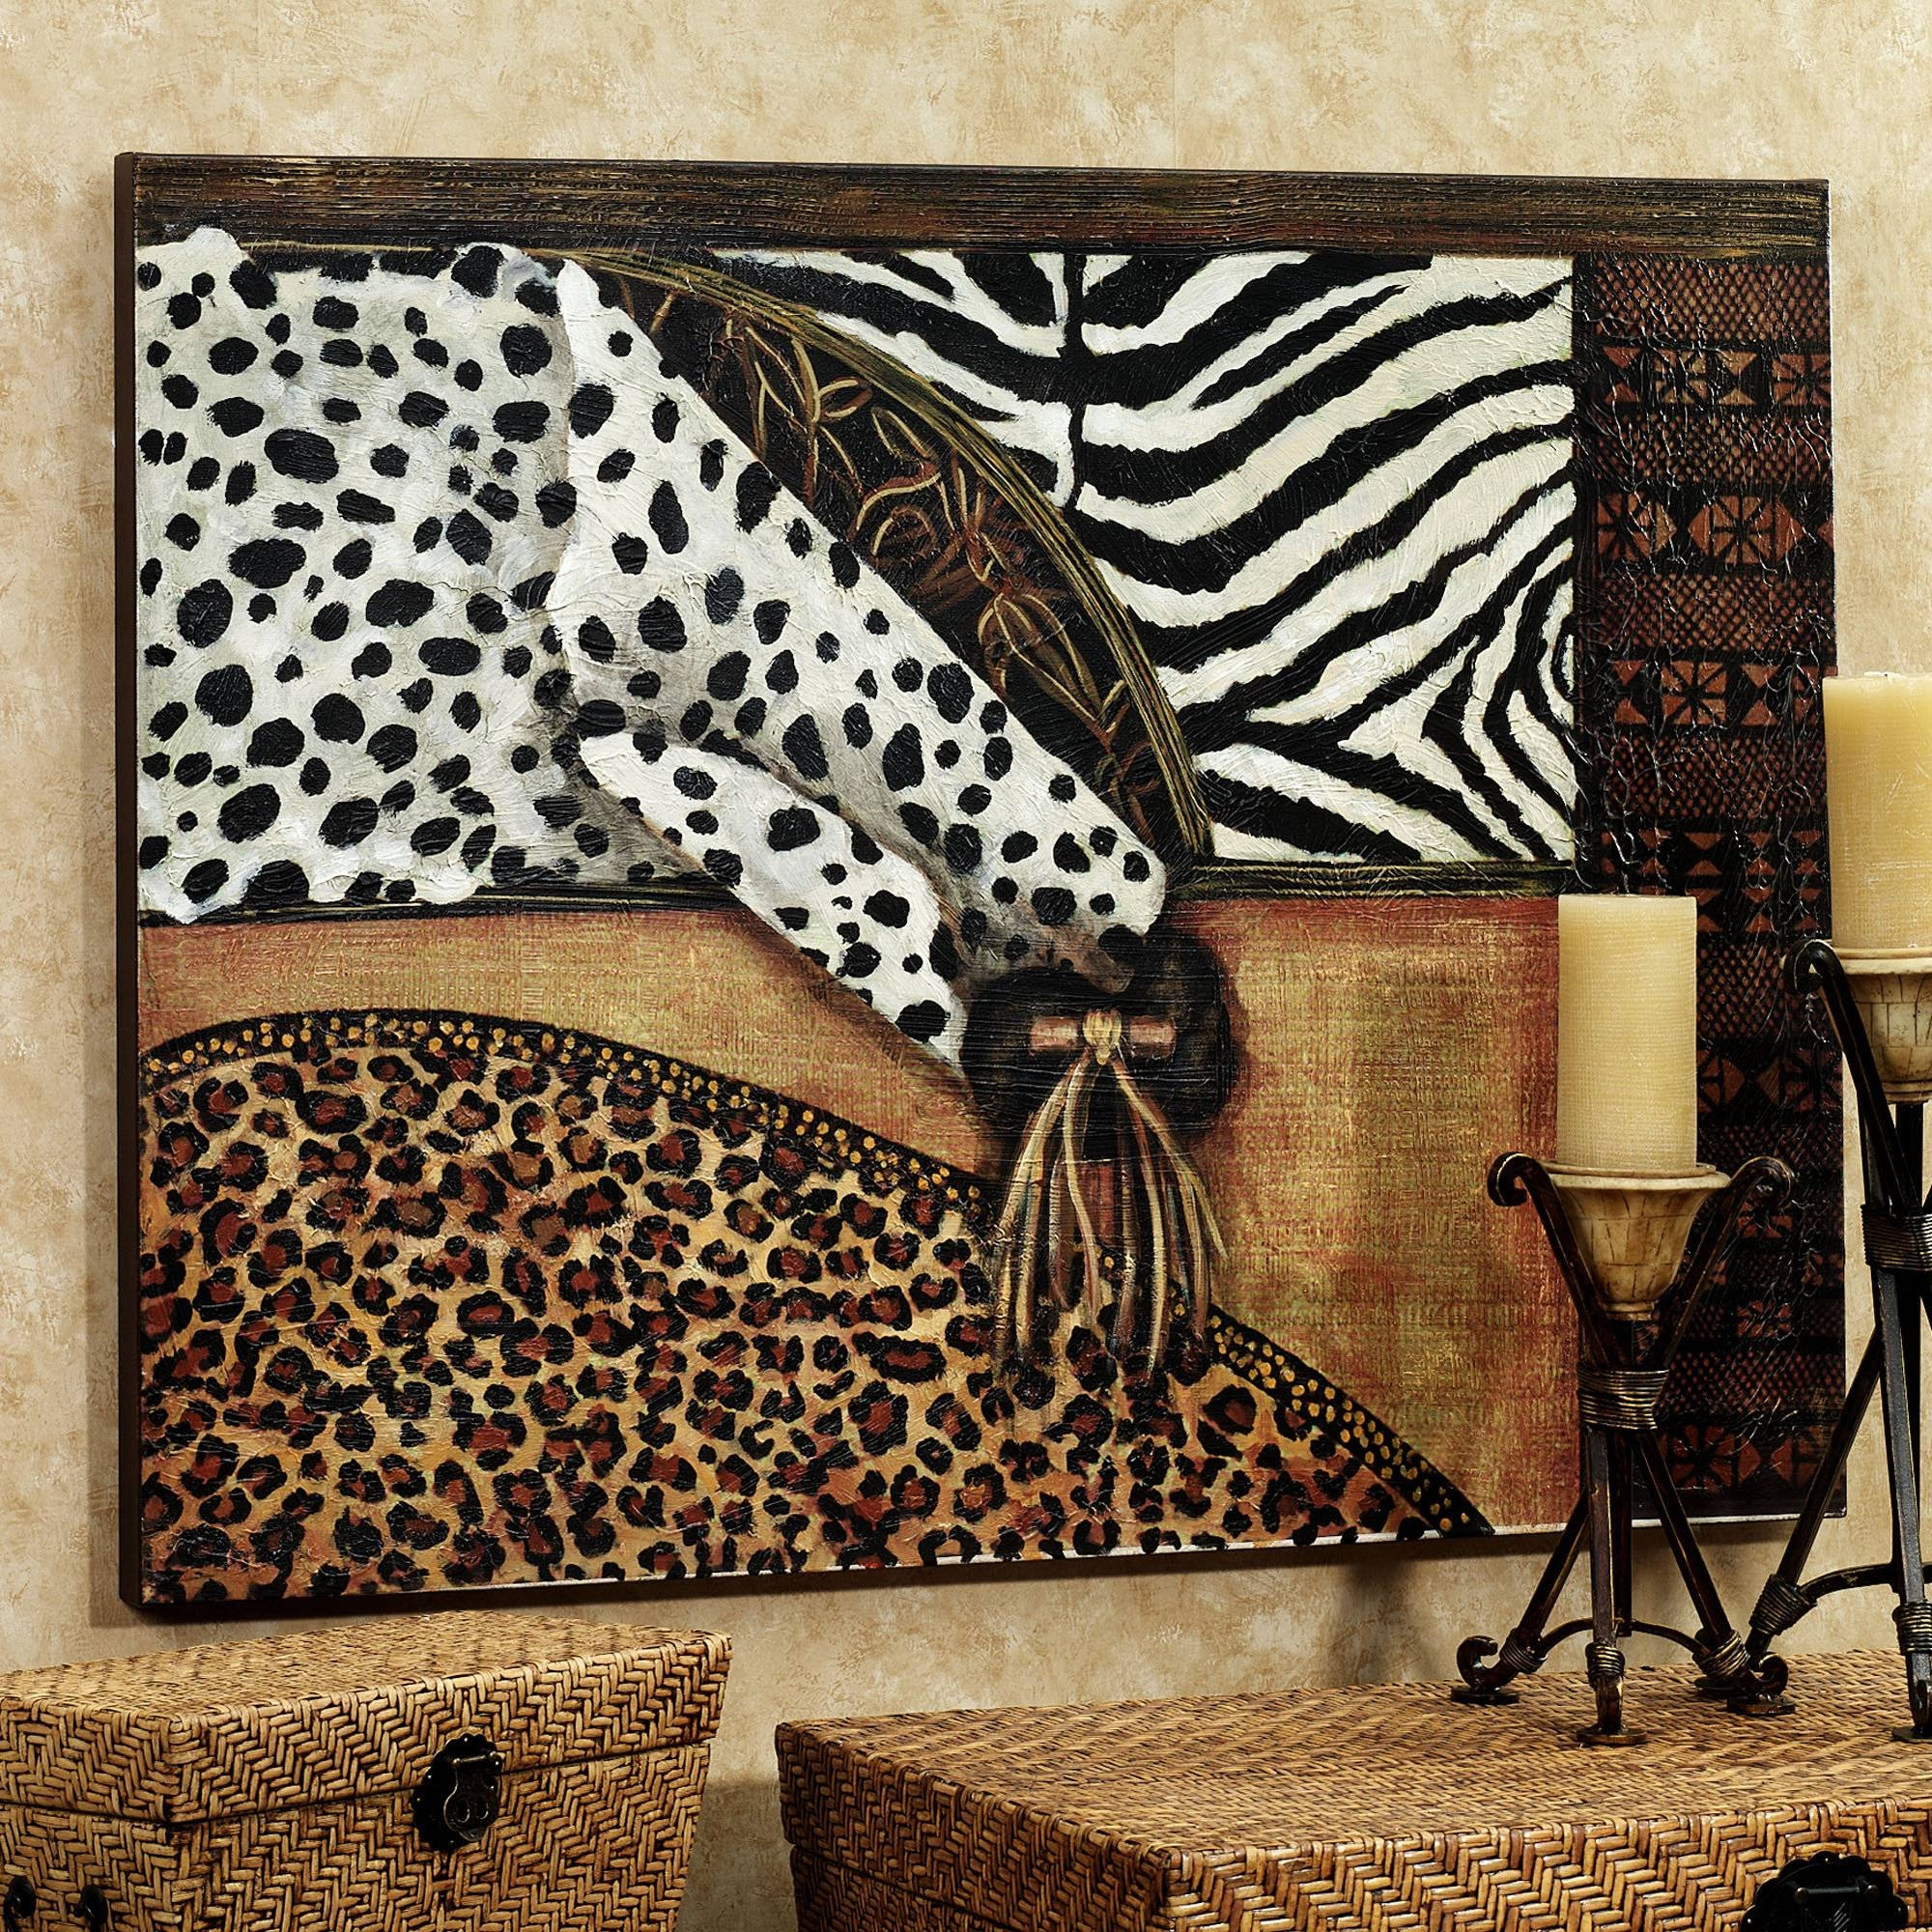 Wall Art Designs: Marvelous Natural Animal Print Canvas Wall Art Regarding Most Recently Released Animal Wall Art Canvas (View 20 of 20)